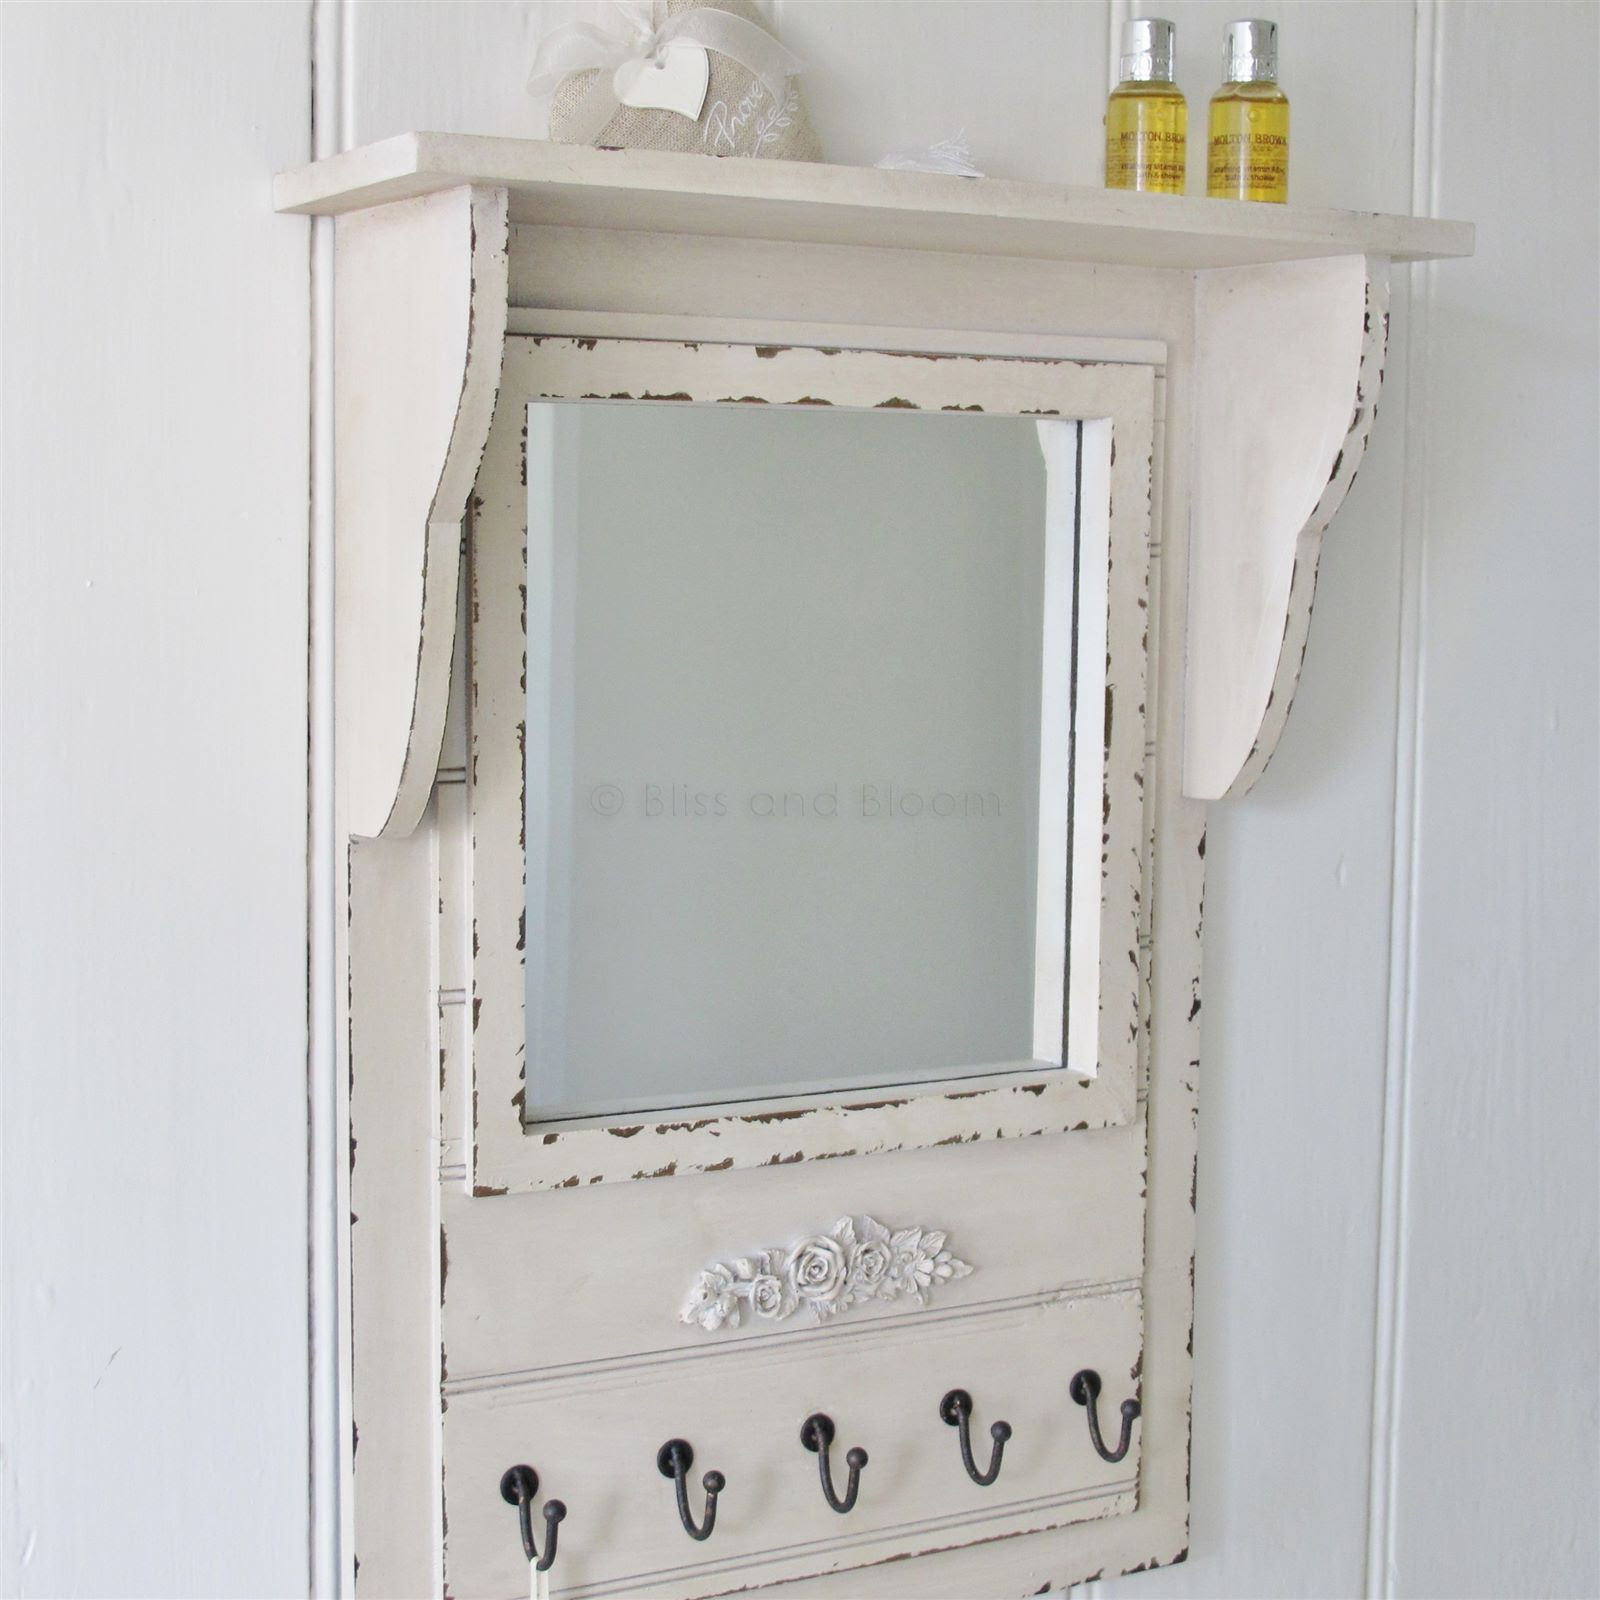 Metal Wall Mirror With Shelf Montague Bathroom Shelf Rail Mirror And Hook Rail Bathroom